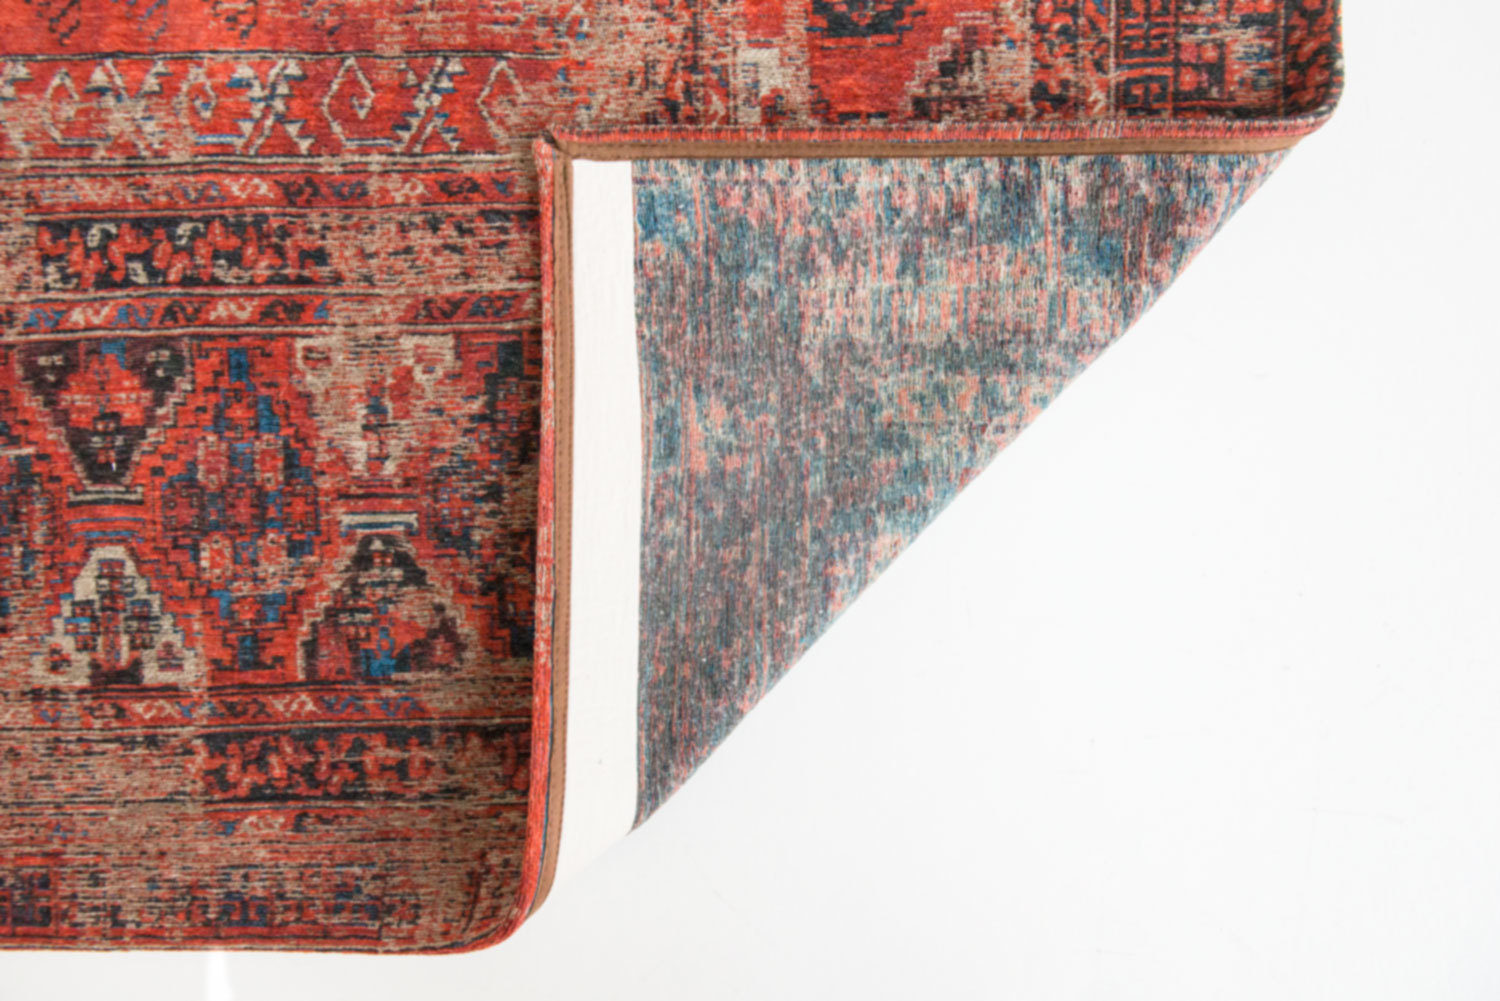 """The legendary Hadschlu from Louis De Poortere is re-edited in its flatweave, distressed version.Sometimes called """"The Notary Rug"""", our Hadschlu has the particularity that it blends into a classic notary study, as elegantly as in a slee, minimalist yuppie interior.It just adds that classy touch that says you know what you want."""